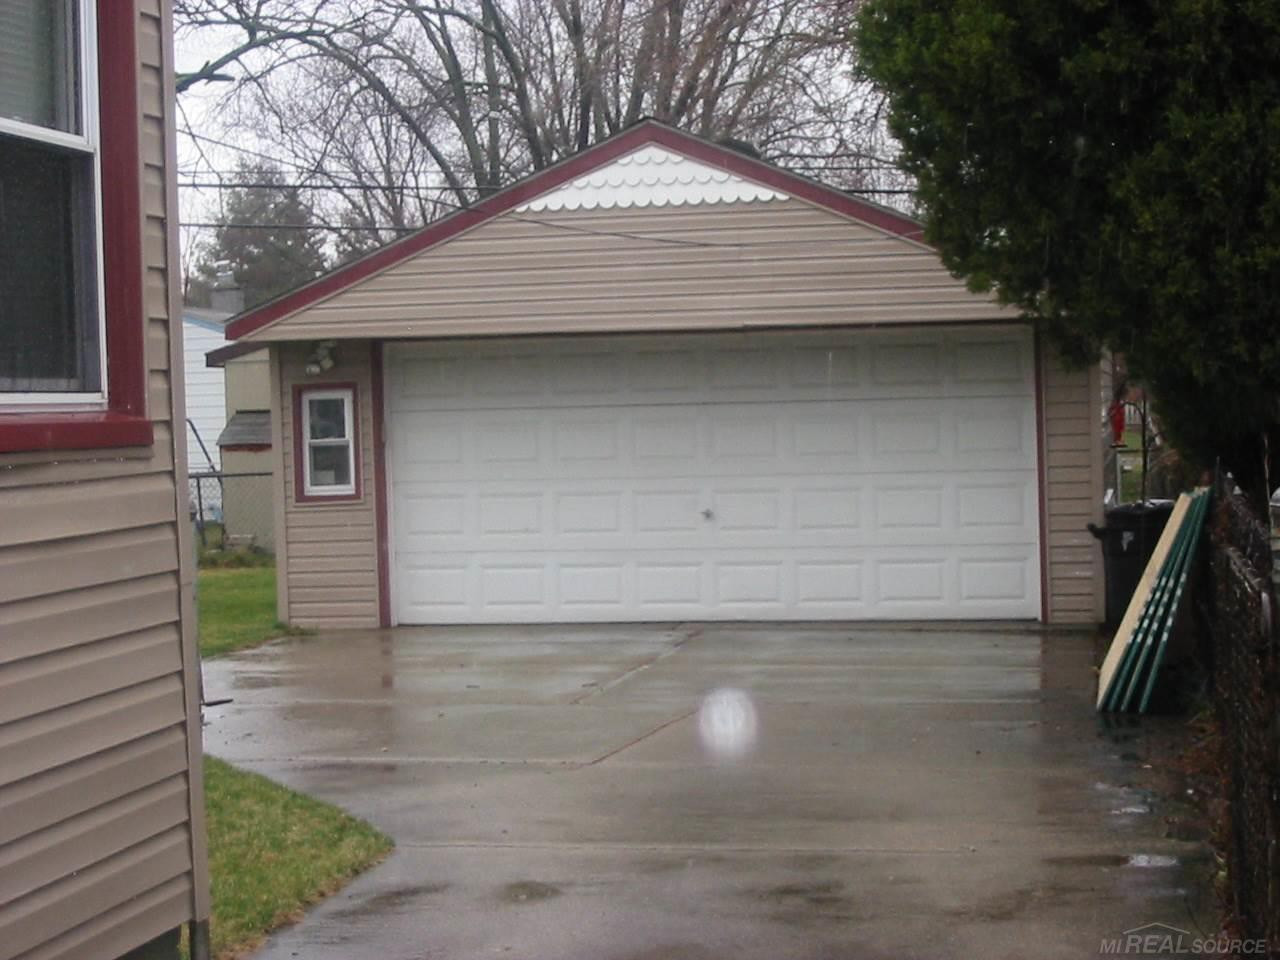 ... Photo of 27337 Delton St, Madison Heights, ...